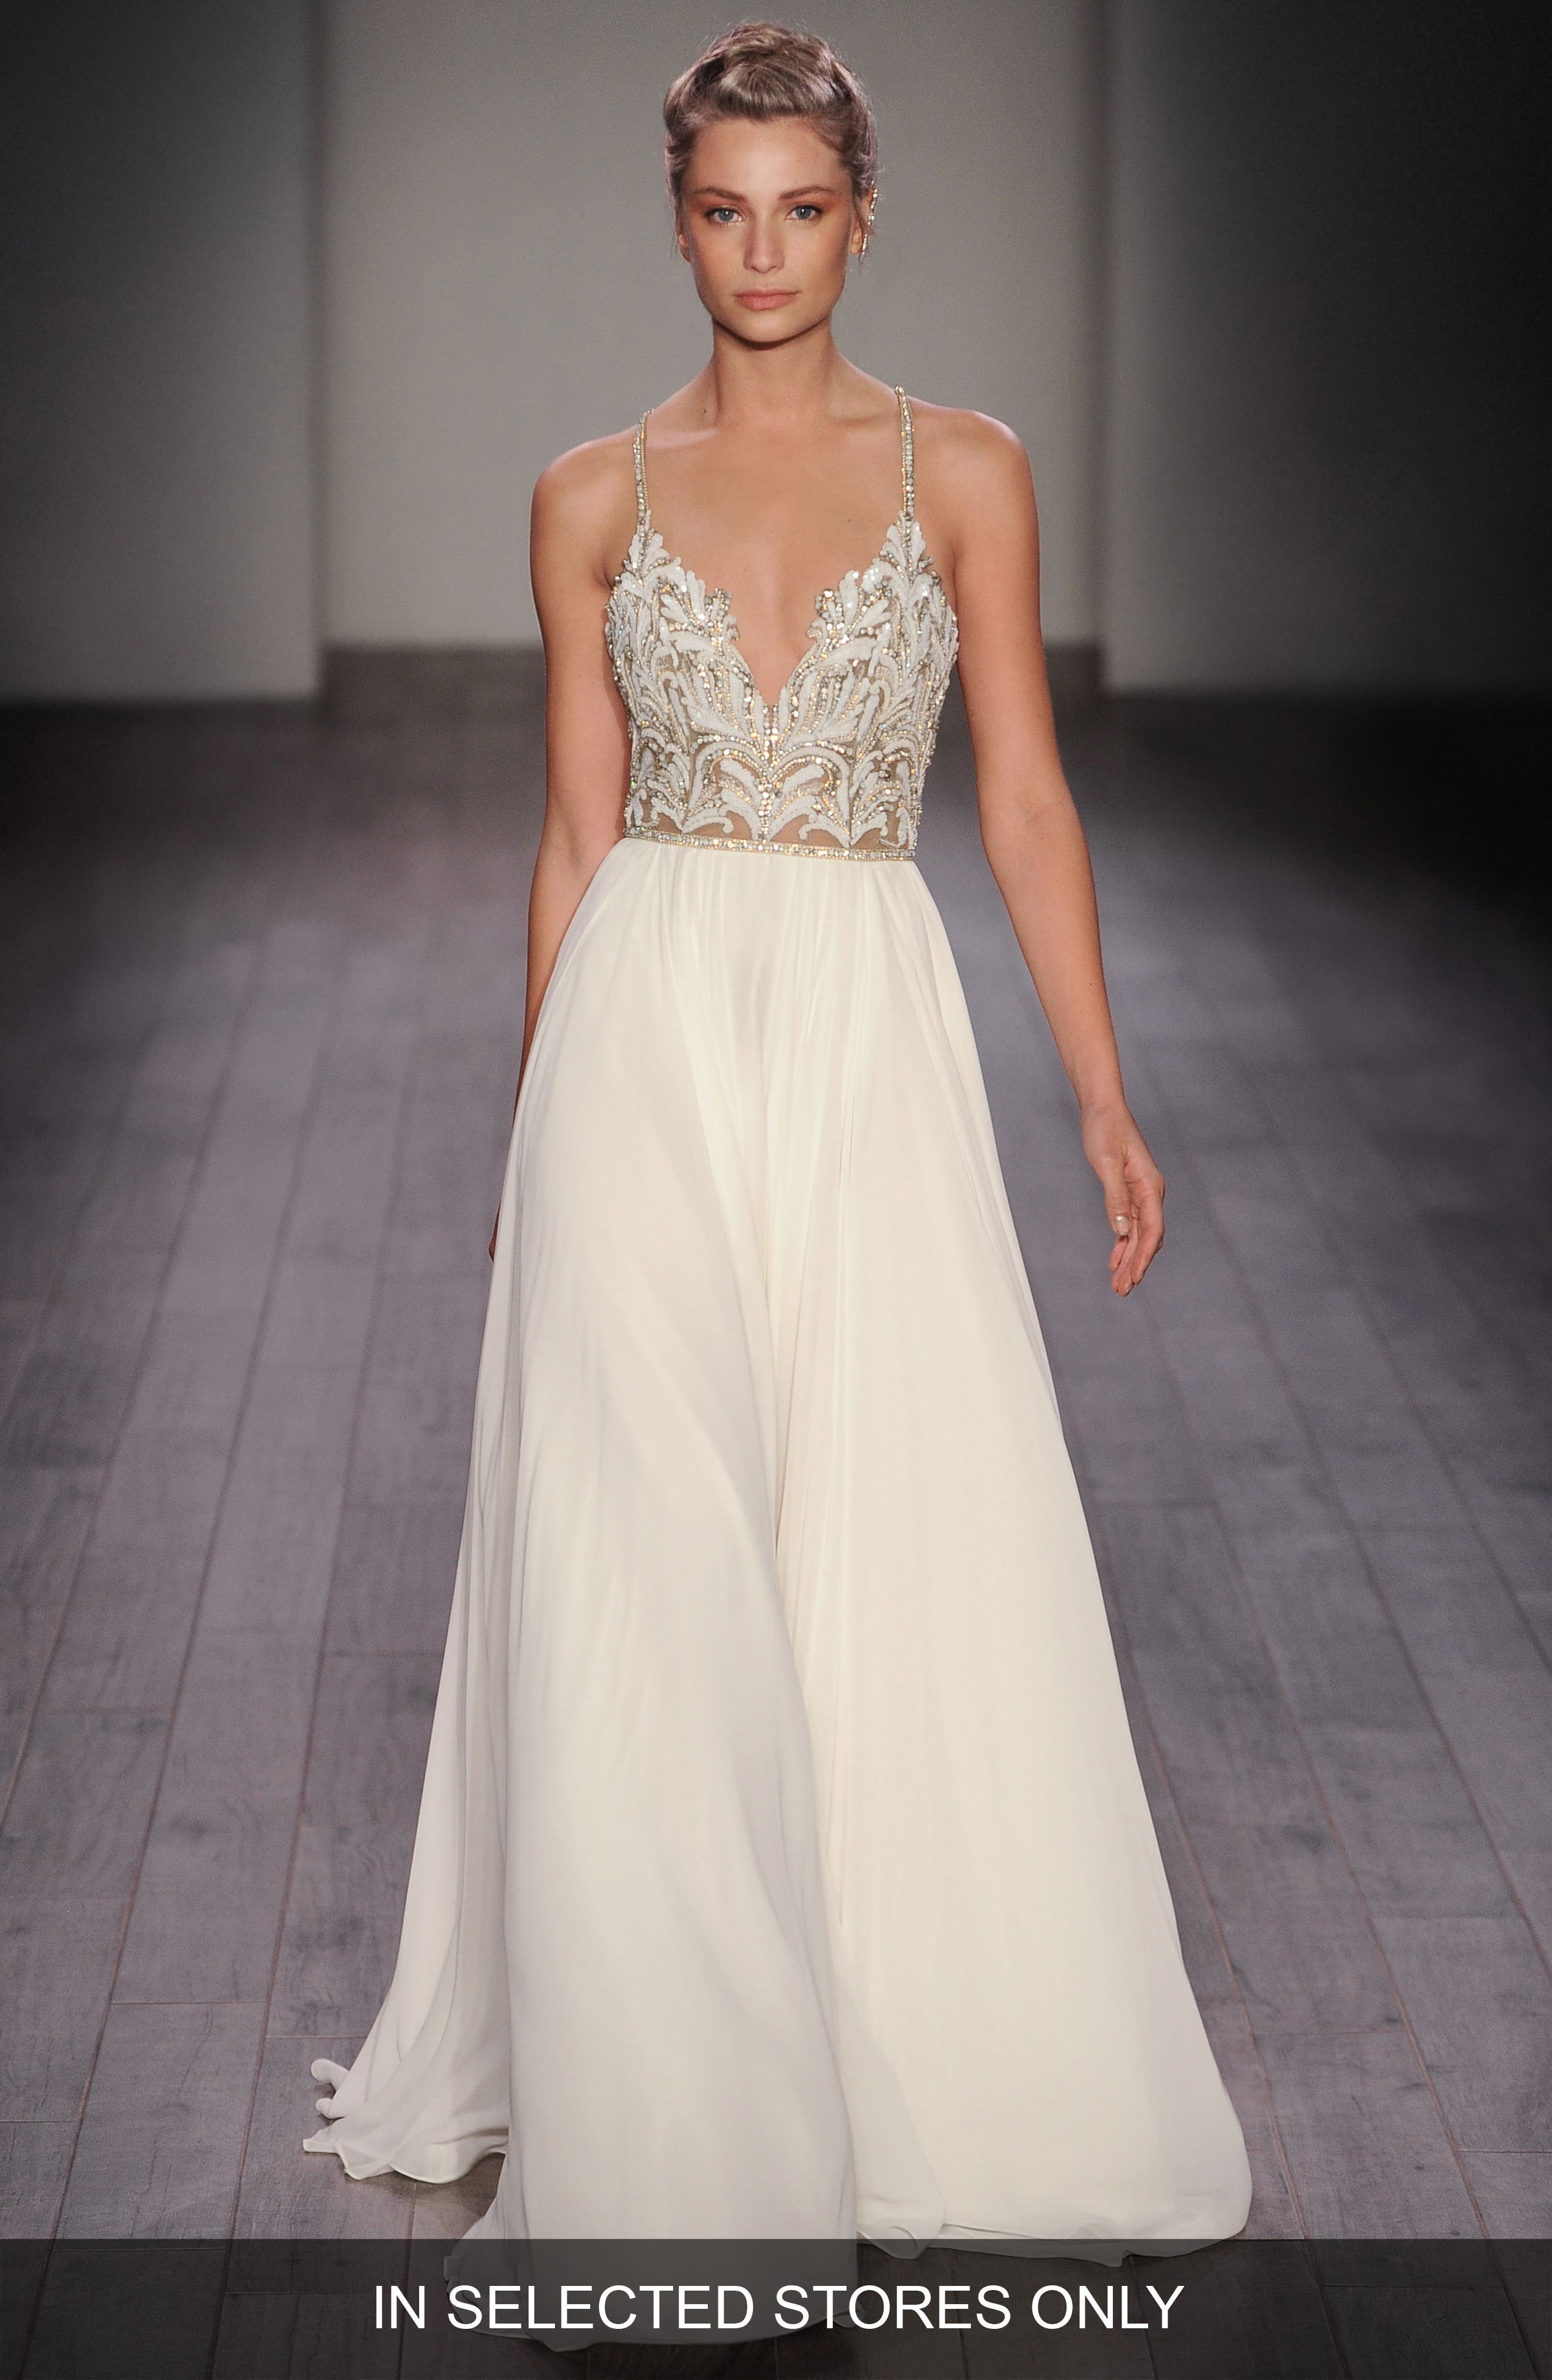 Alternate Image 1 Selected - Hayley Paige Teresa T-Strap Back Embellished Chiffon A-Line Gown